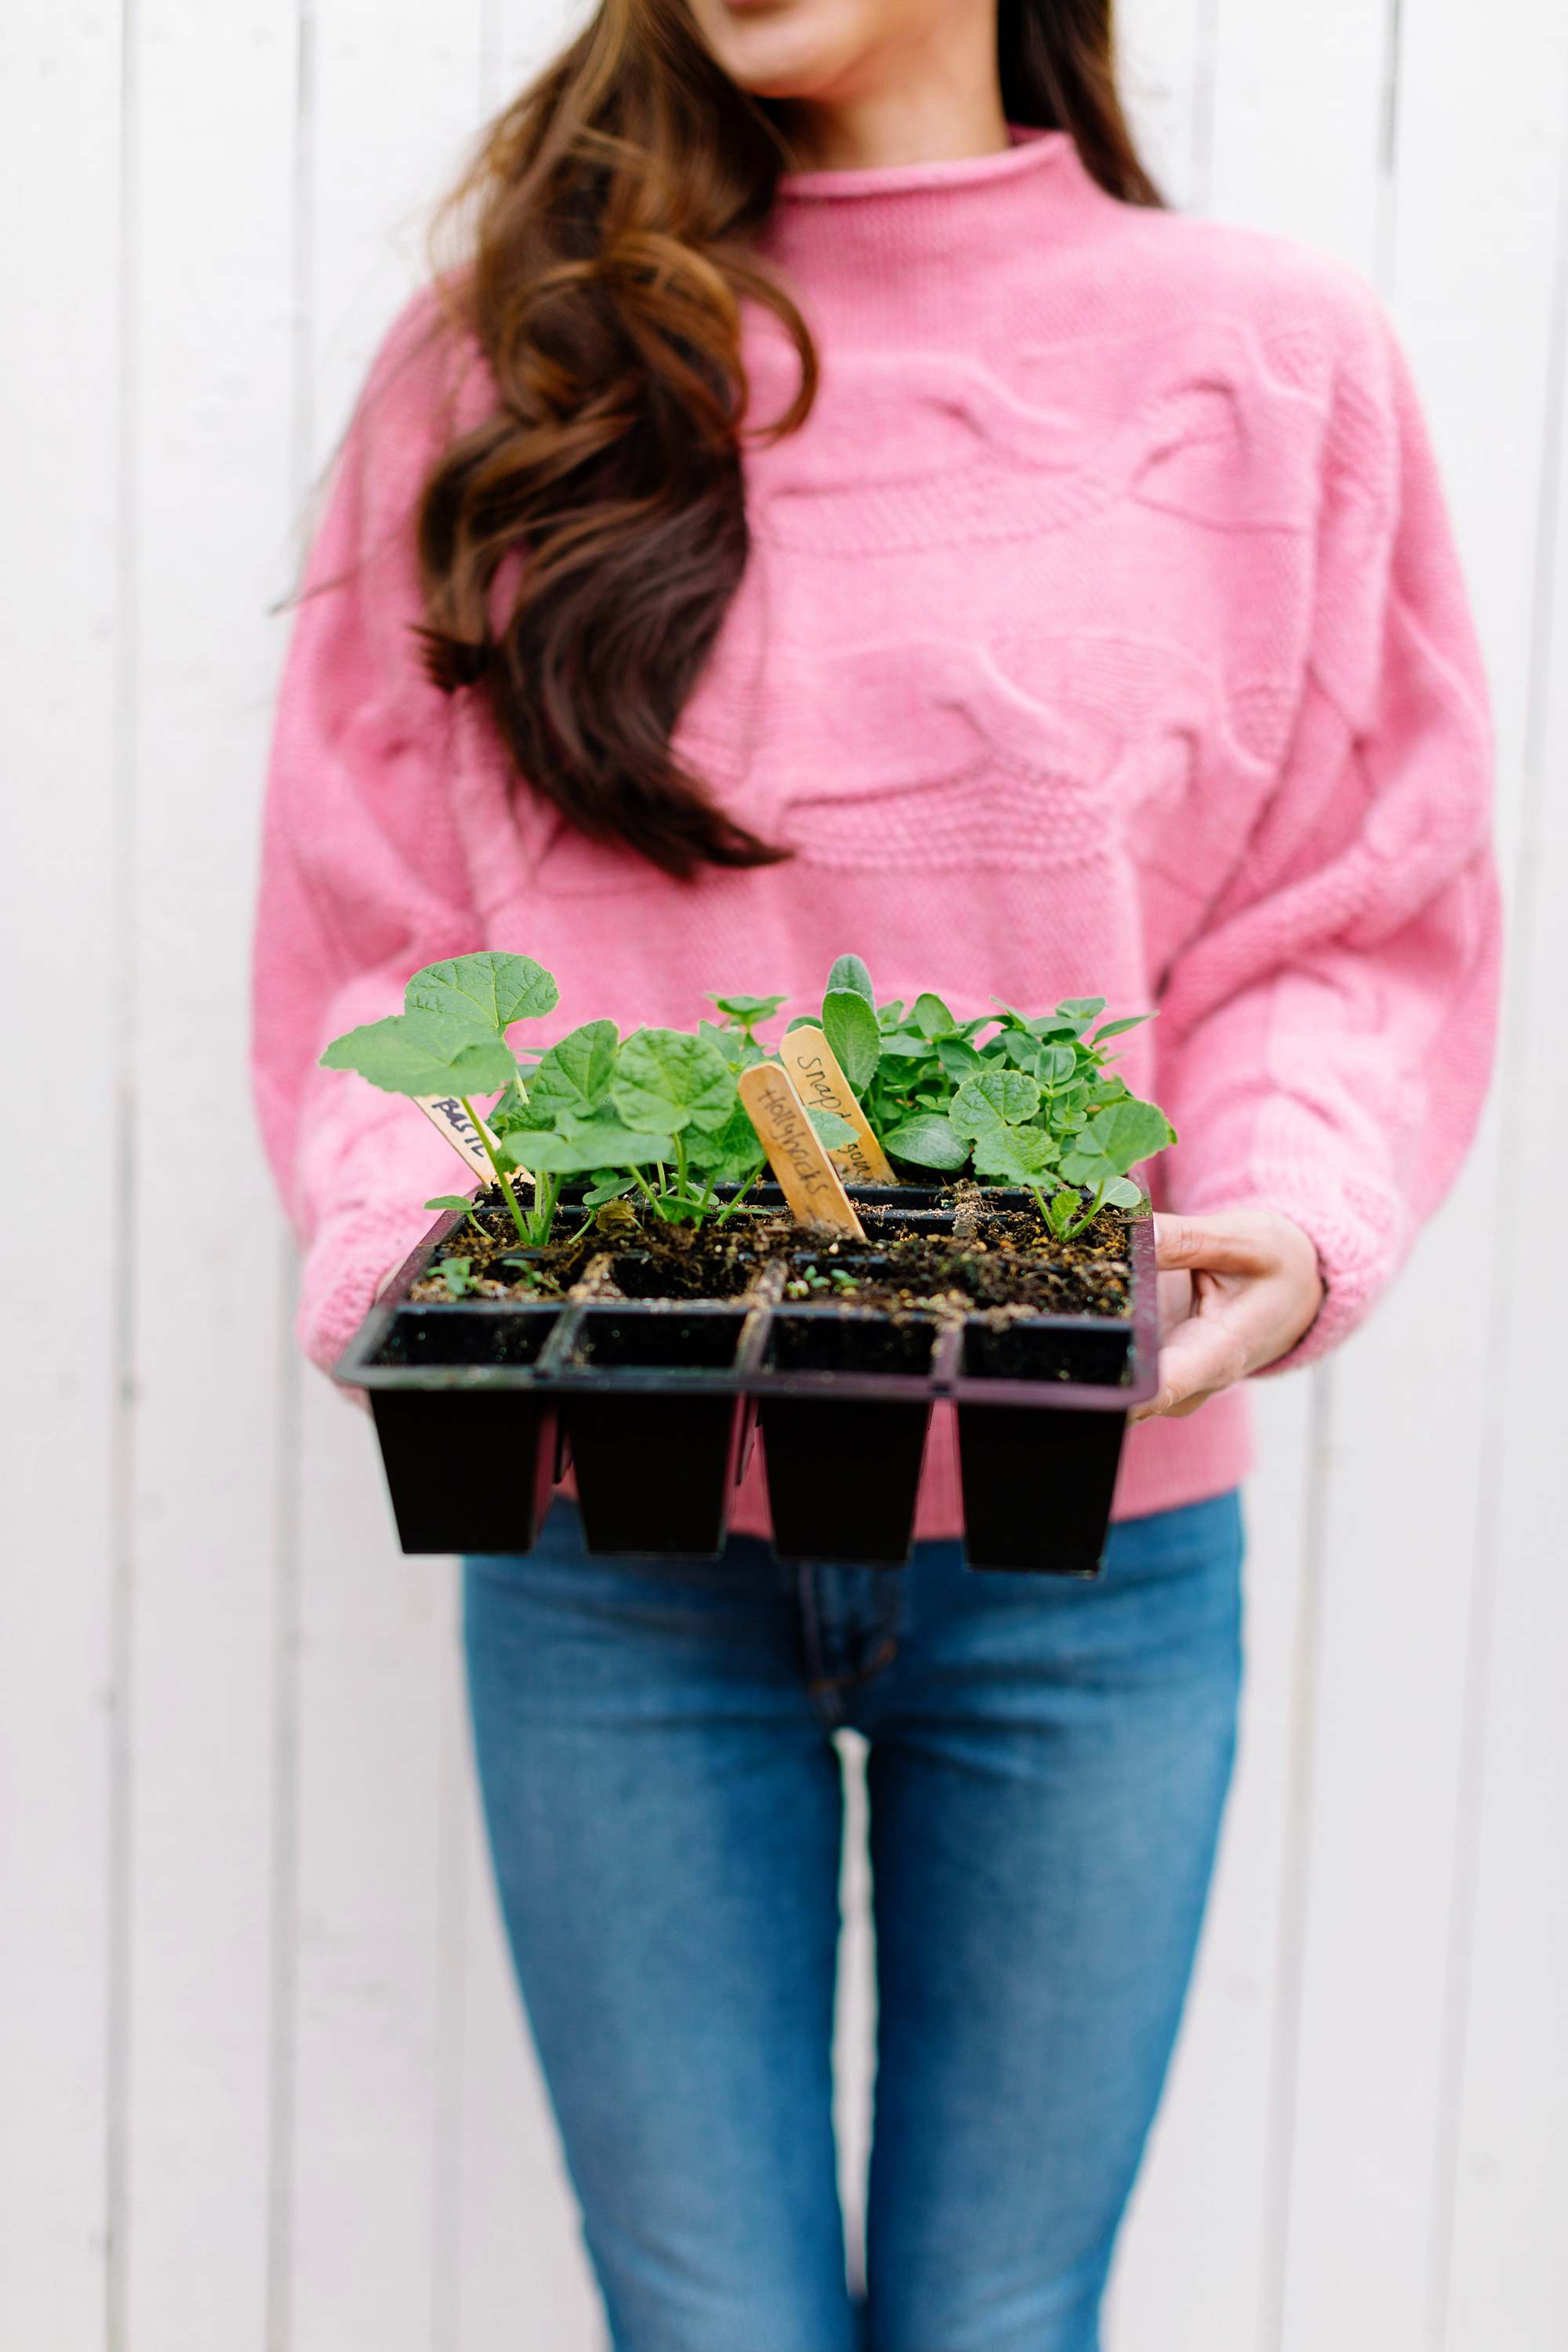 seed starter lifestyle blogger garden blog Diana Elizabeth holding tray of starters